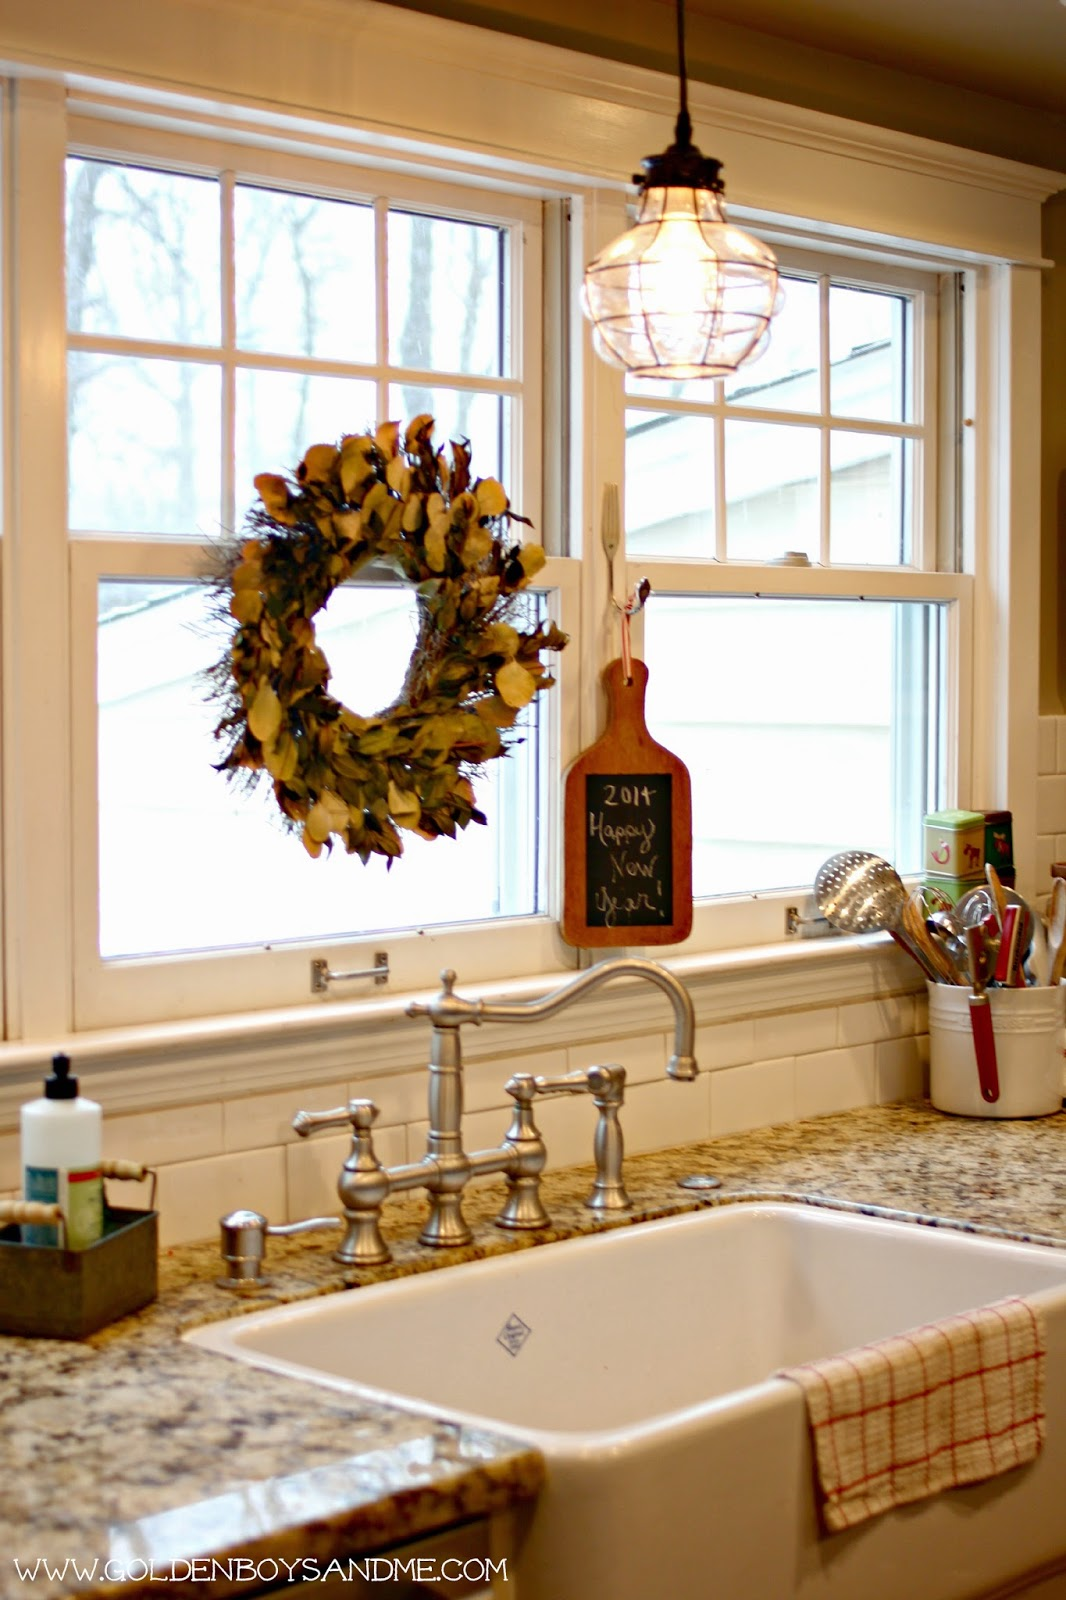 kitchen sink pendant light fixtures lowes golden boys and me winter in our